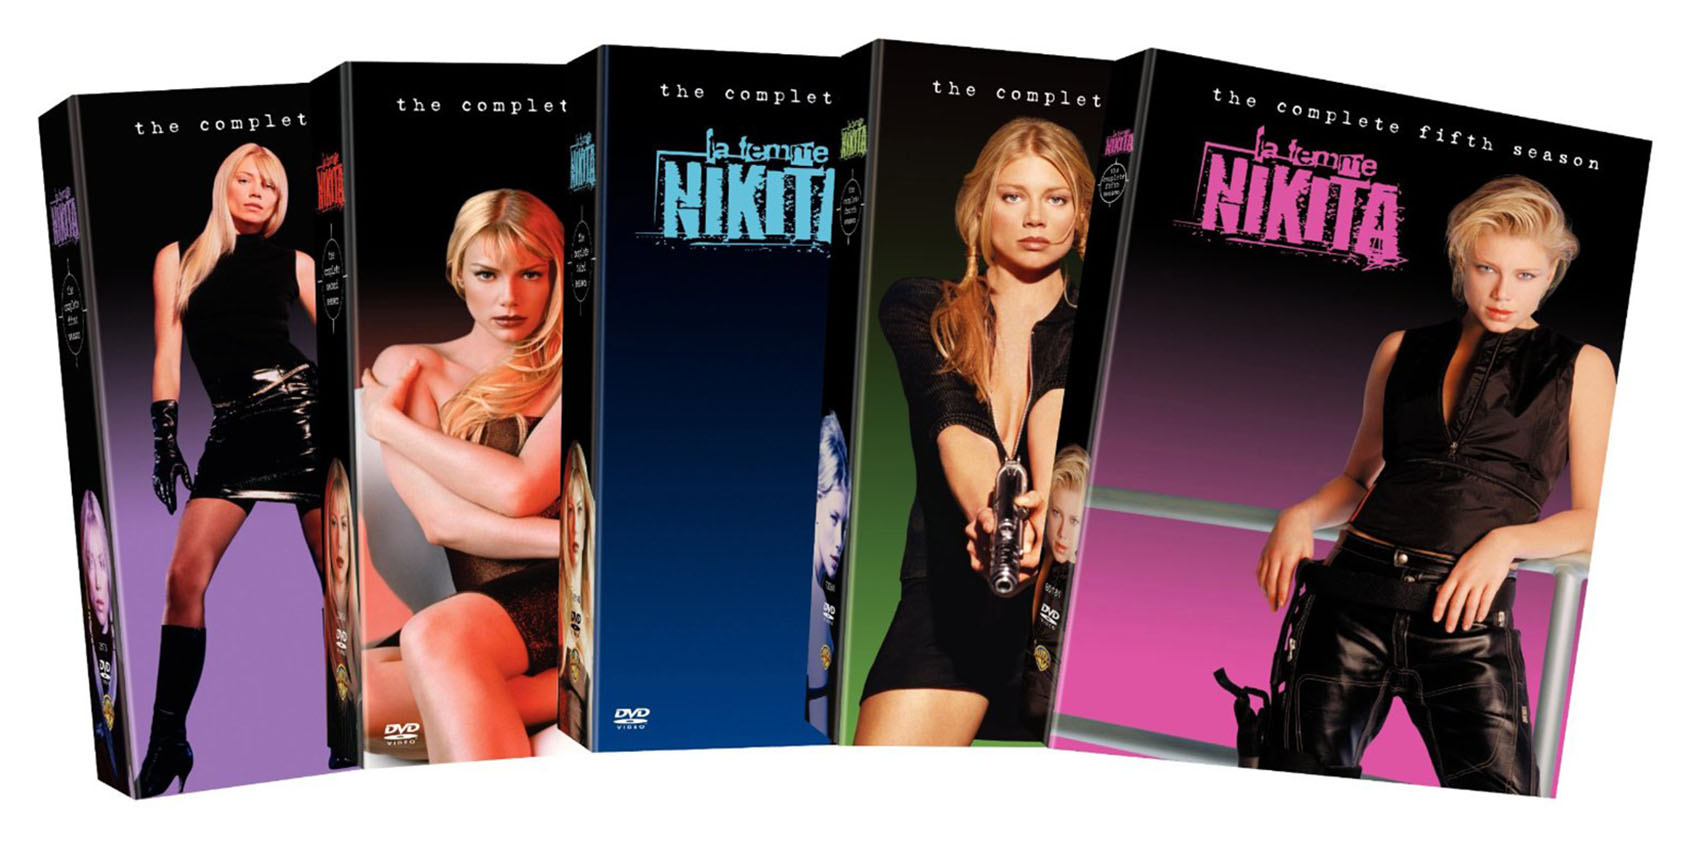 la femme nikita Sync-ed for dotexone's rip but should work for all blueray rips with 117 min runtime (it's so hard to find french verbatim subs for french movies, how on earth you expect us to learn french you guys :p.